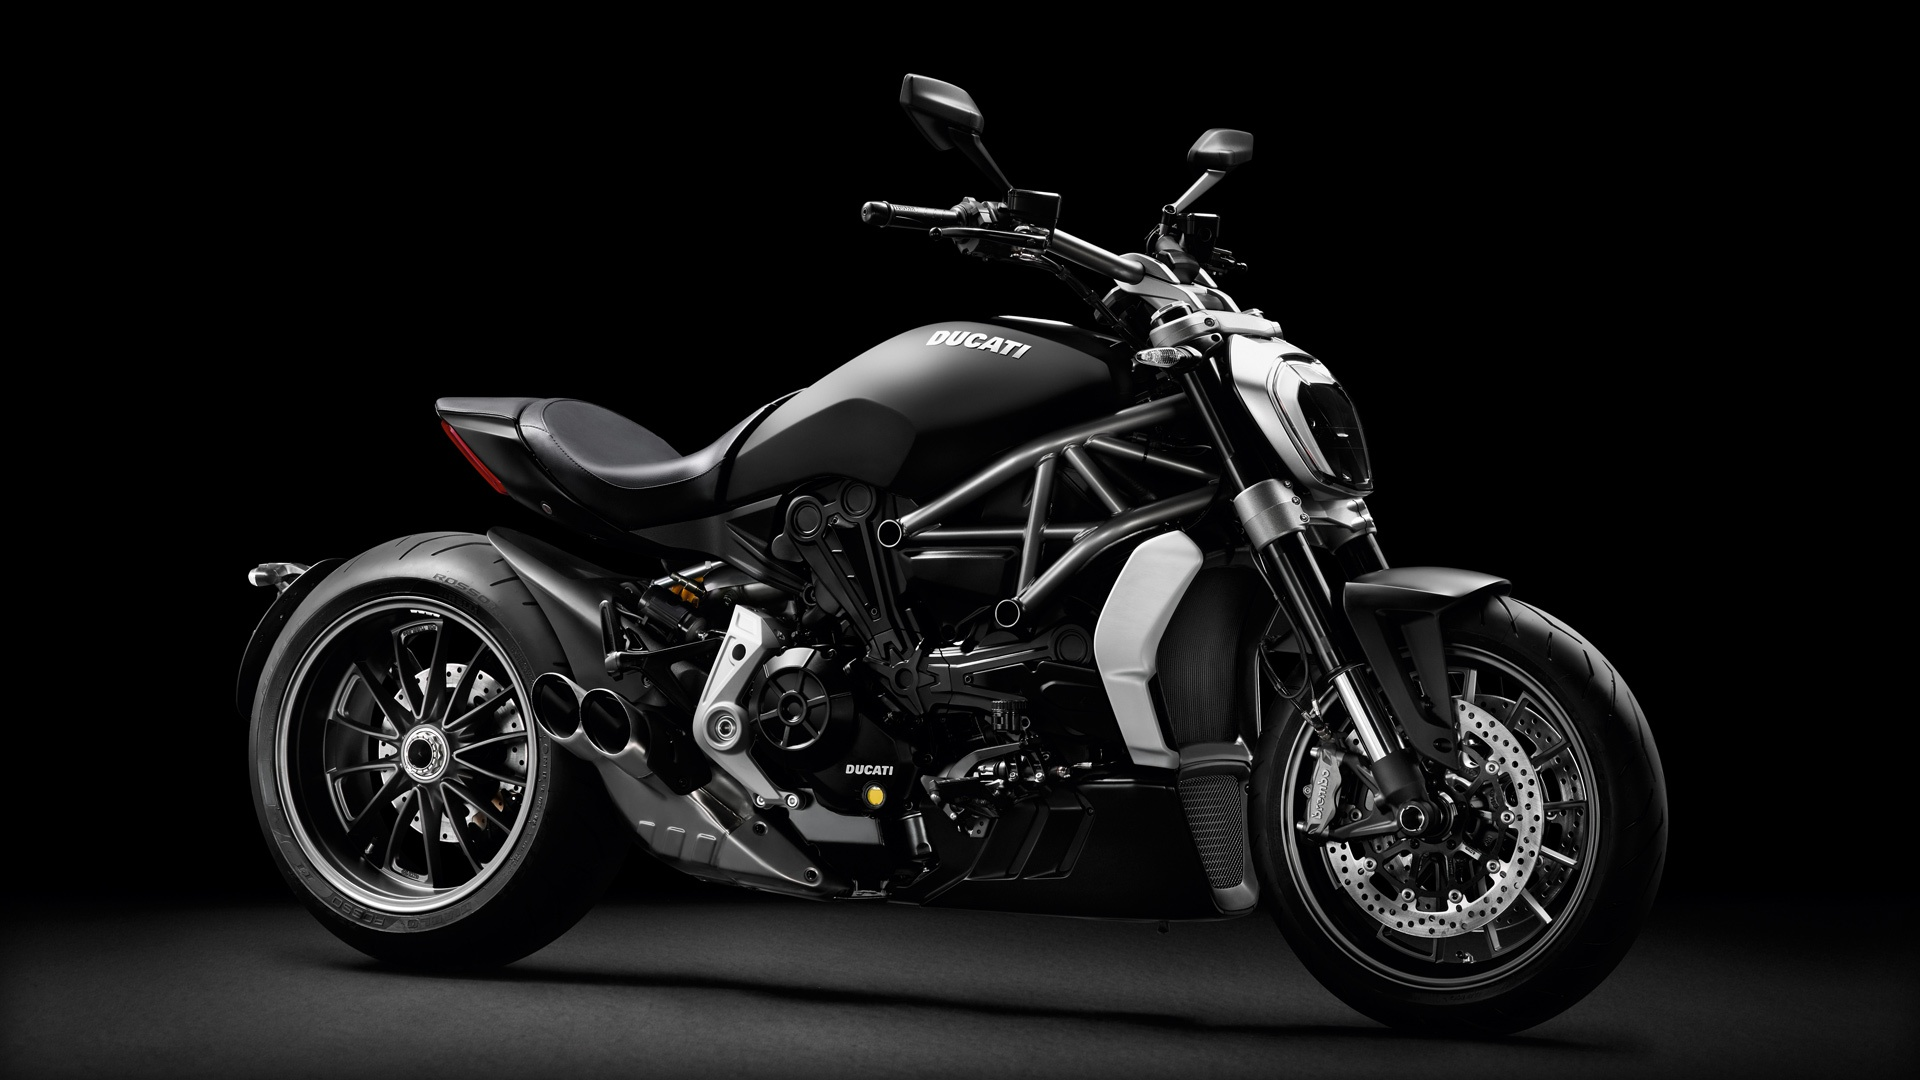 Review of 2016 Ducati XDiavel